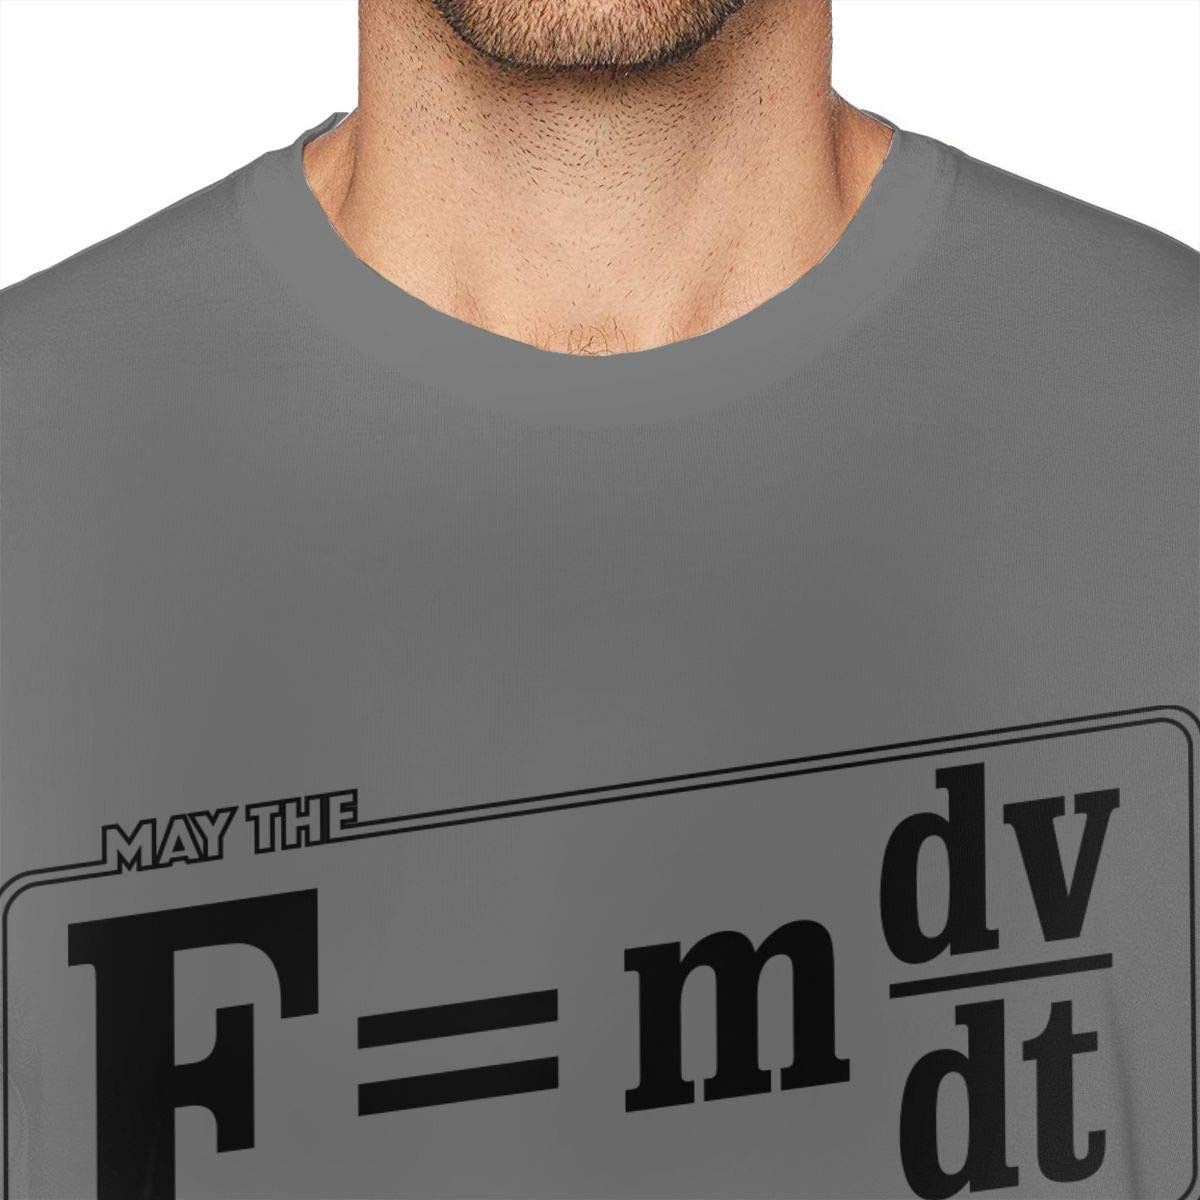 Be with You Mens Shirt Short Sleeve T-Shirt ZlTRNNc May The F=mdv Dt Casual Shirt for Men Teenagers